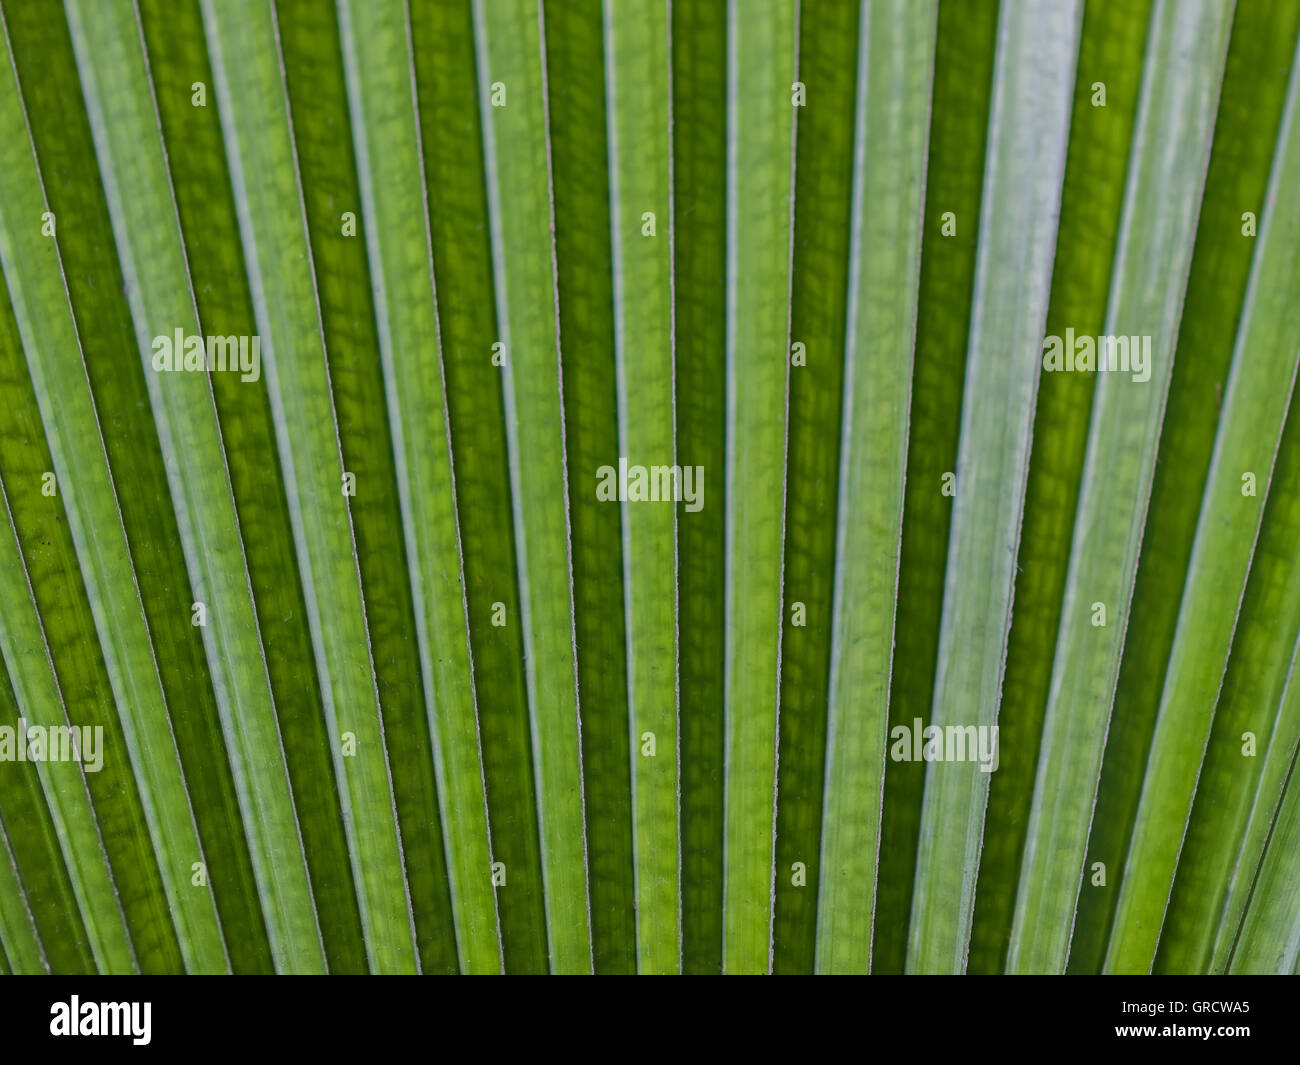 Close Up Of A Tropical Green Leaf In A Fan Shape - Stock Image